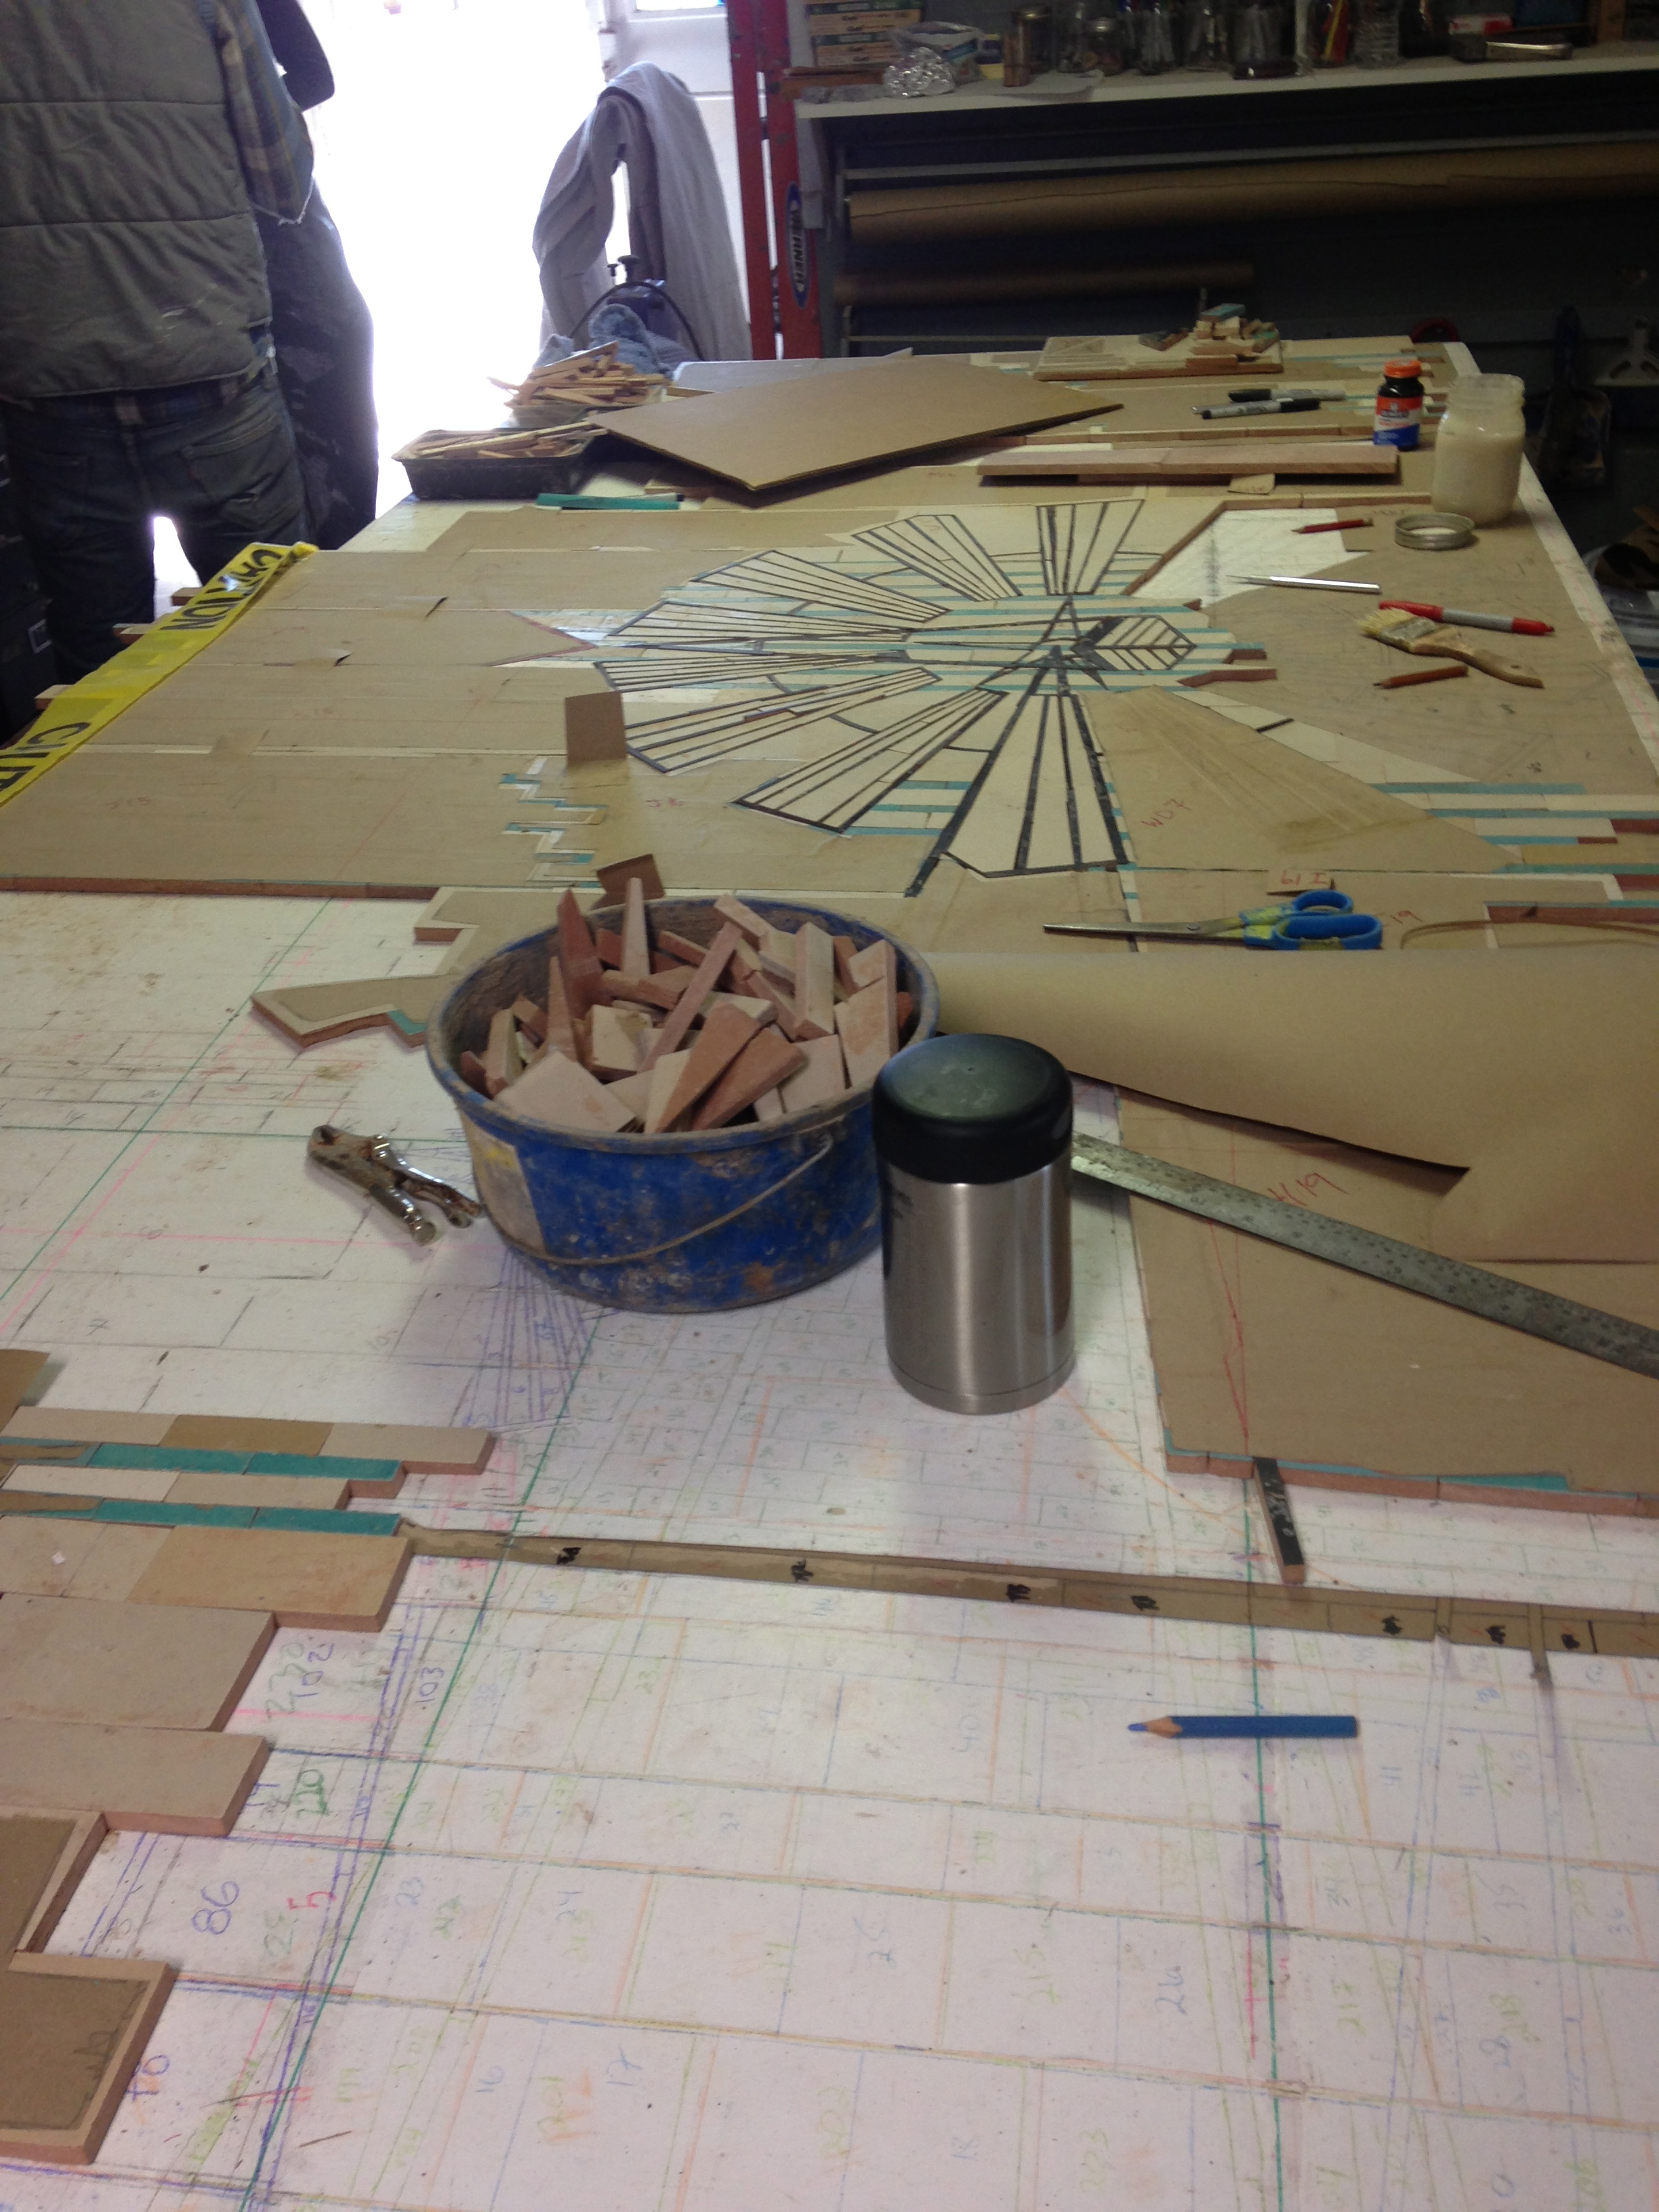 Creating the mosaic at Pippa Murray Mosaics, Sausalito